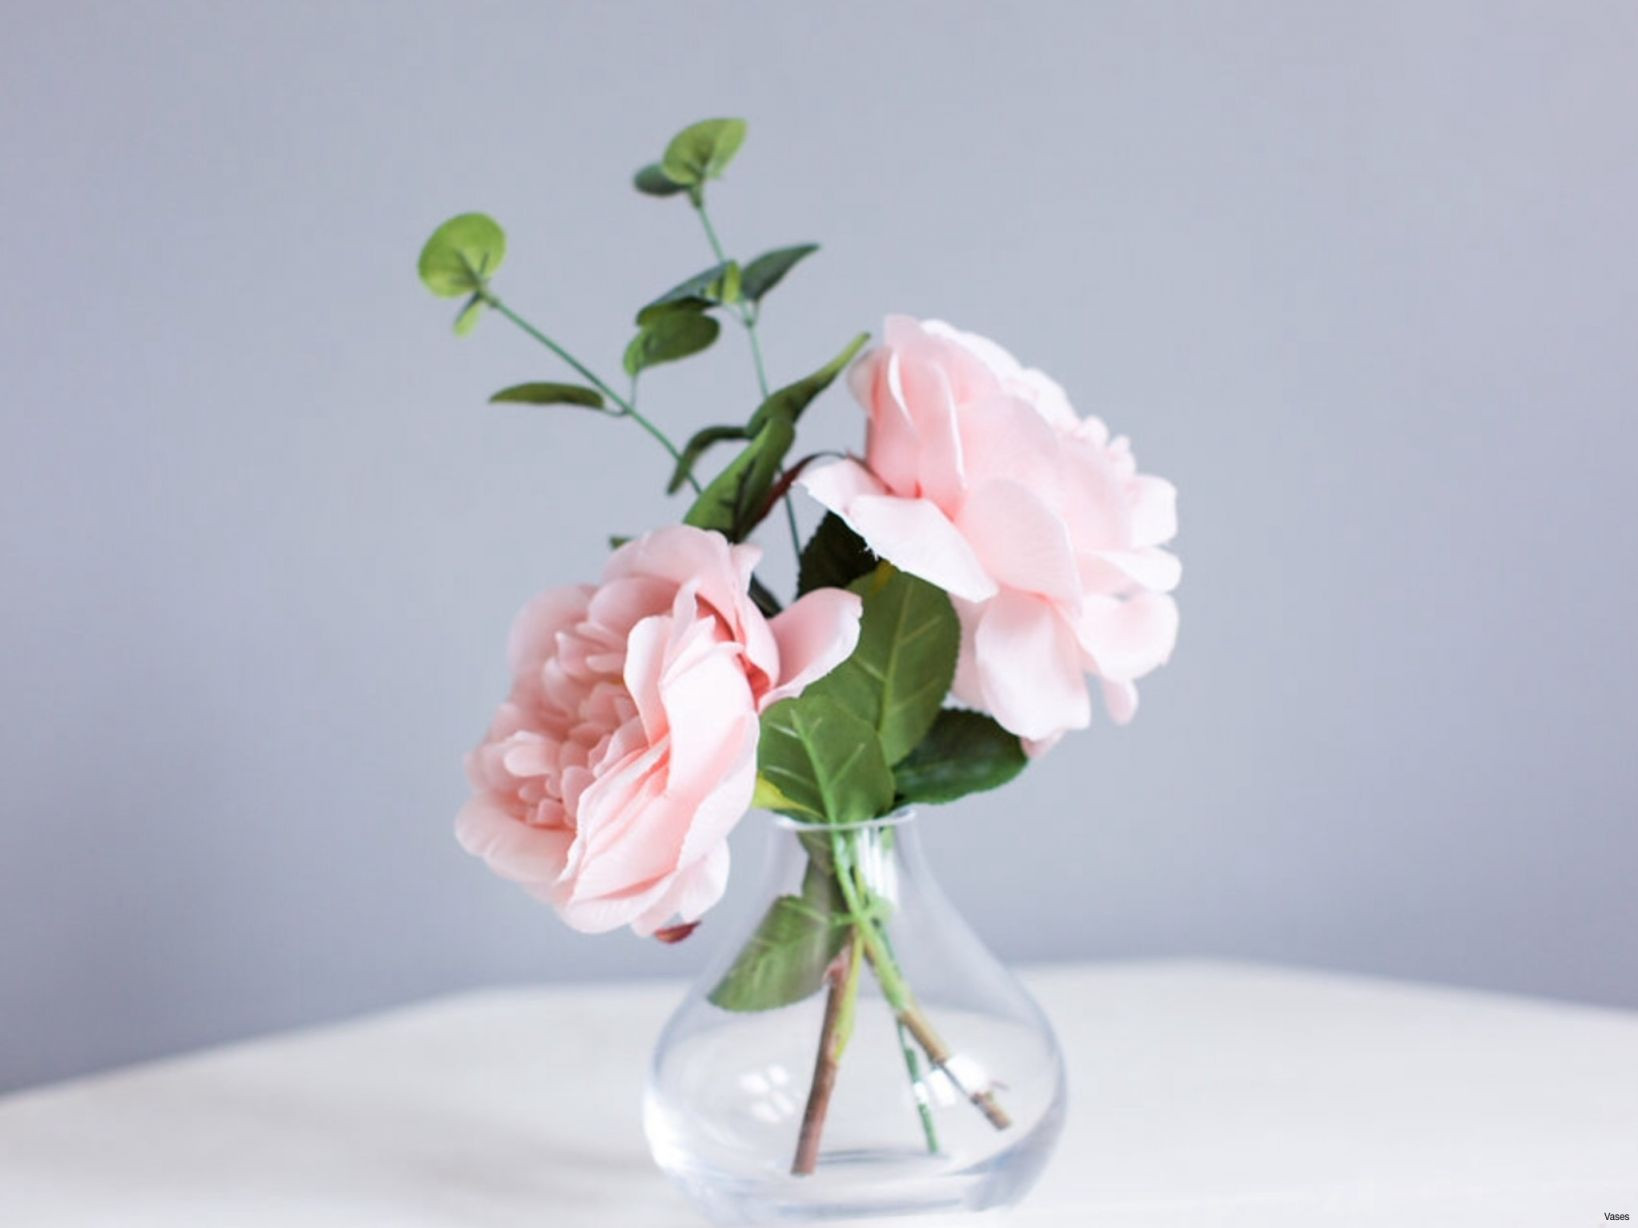 Carnation Bud Flower Inspirational Beautiful Types Carnations Flowers Qw50 – Documentaries for Change